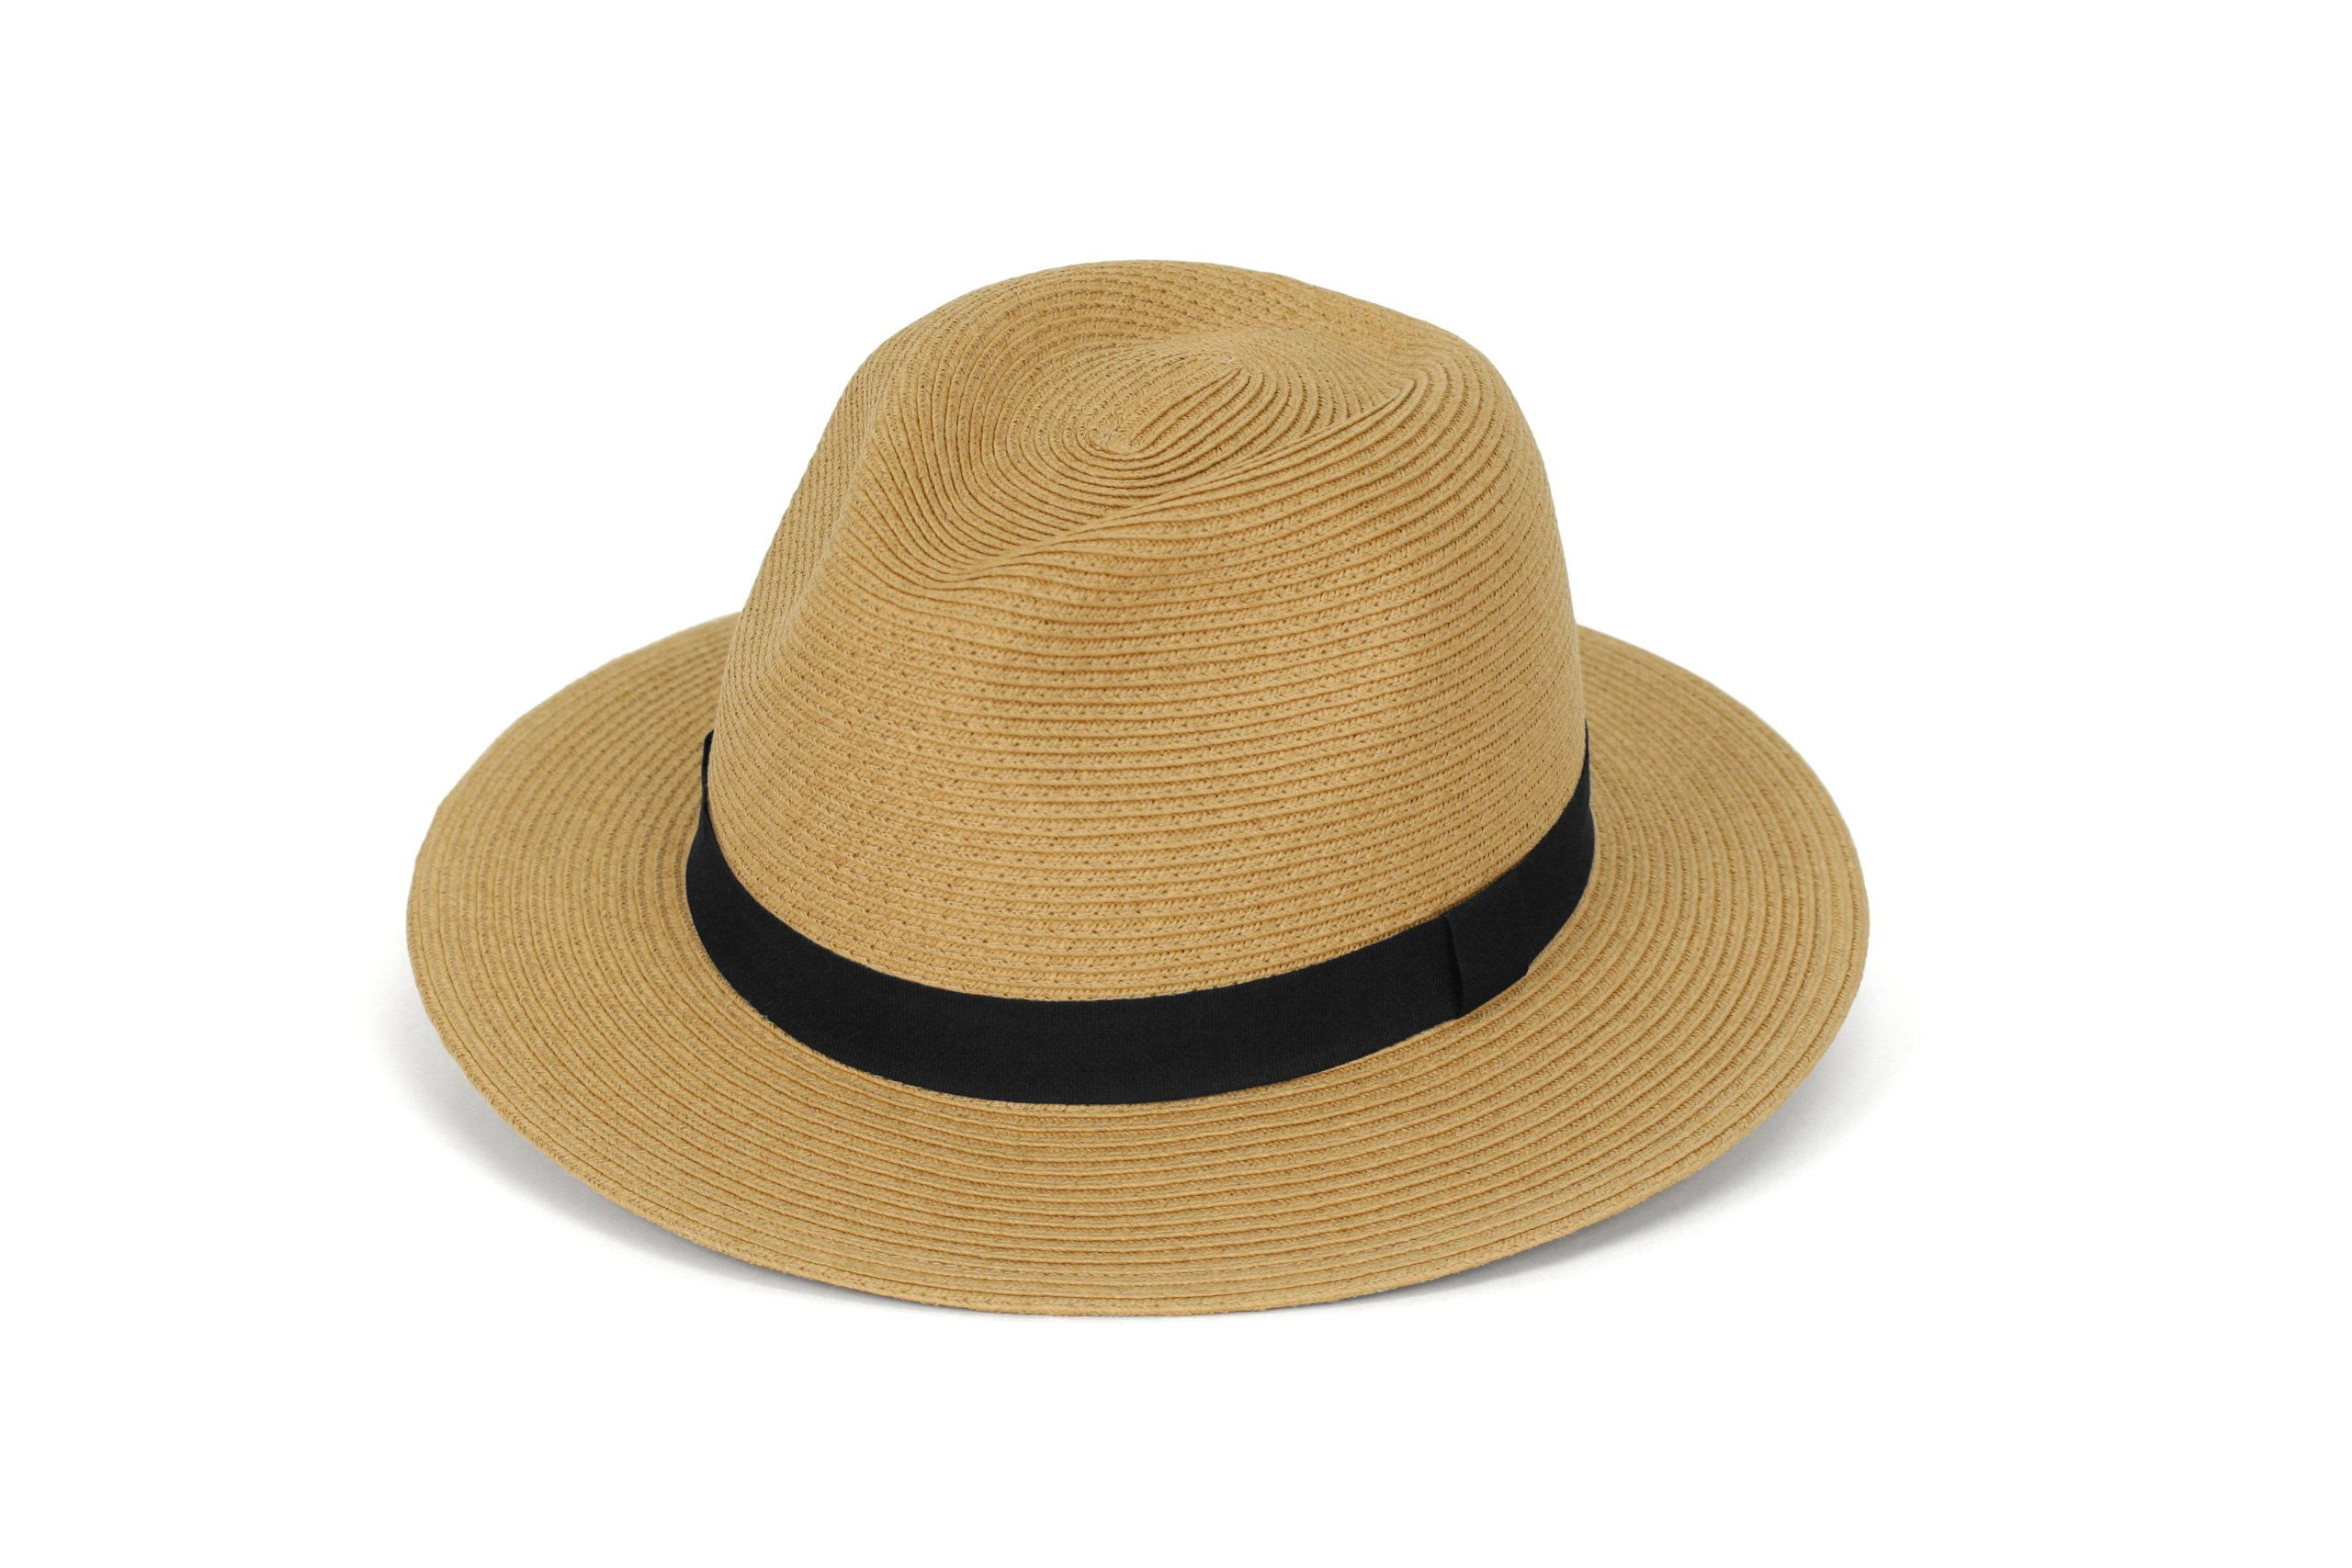 Sunday Afternoons Havana Hat, Tan, Large/X-Large